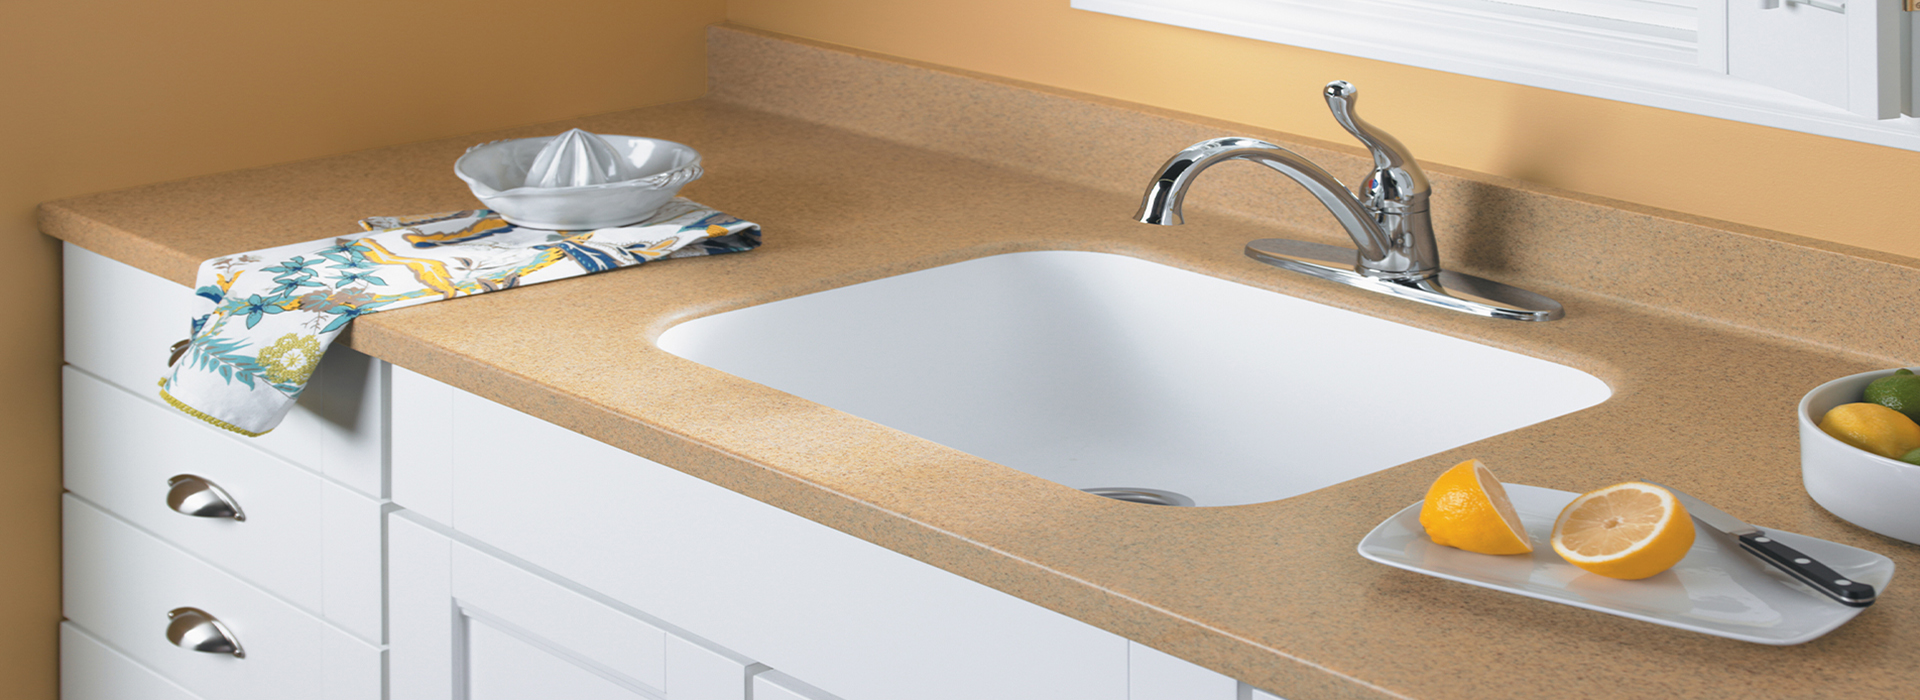 everform solid surface sinks